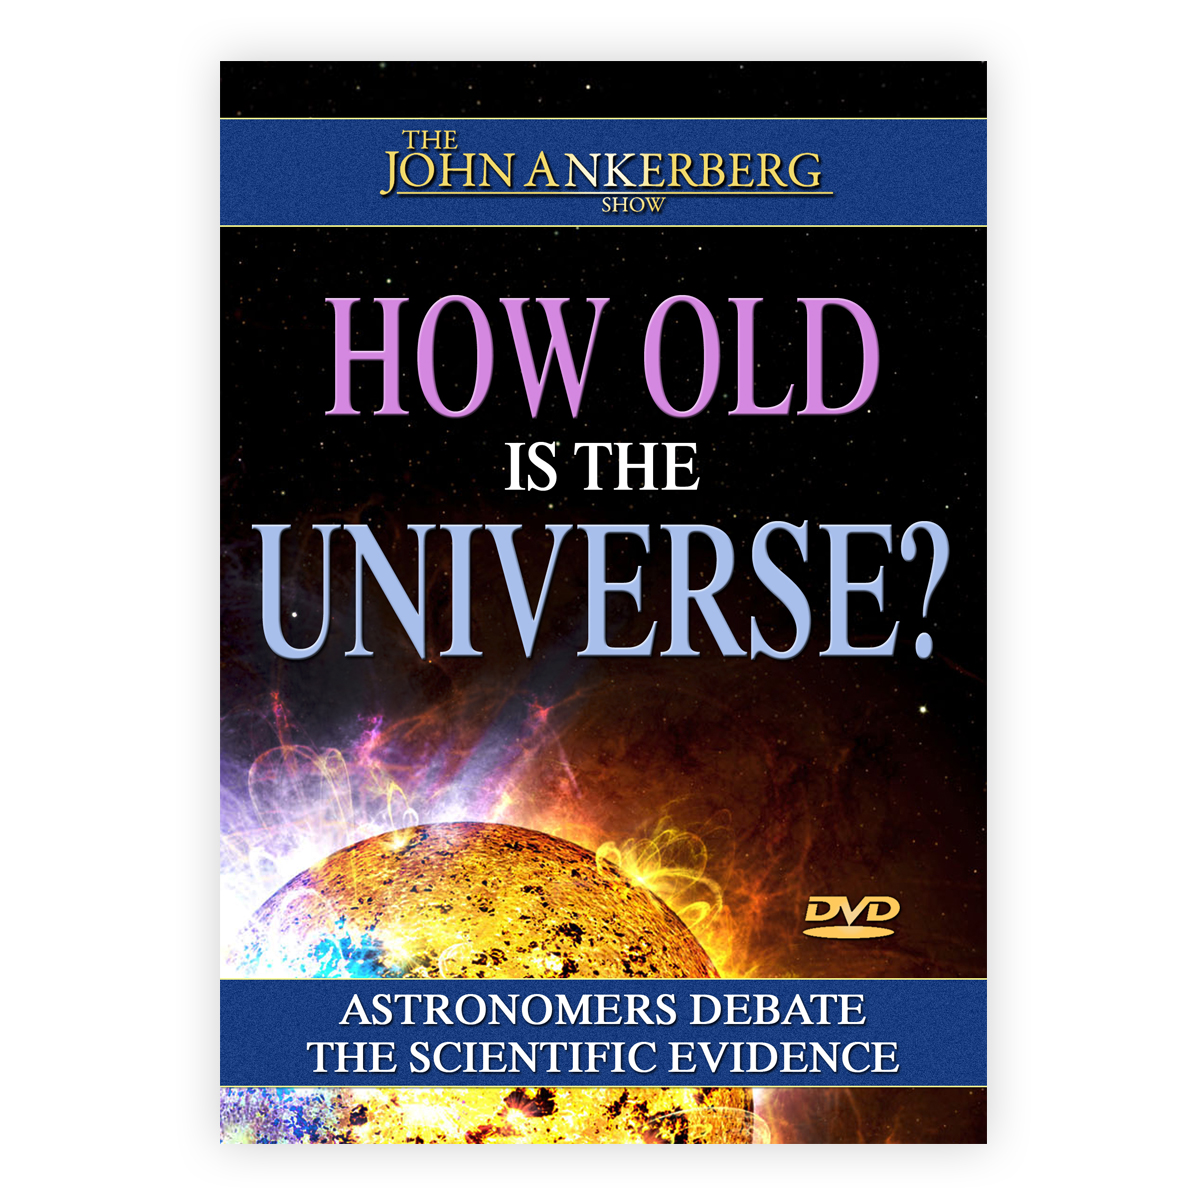 How Old Is the Universe? Image